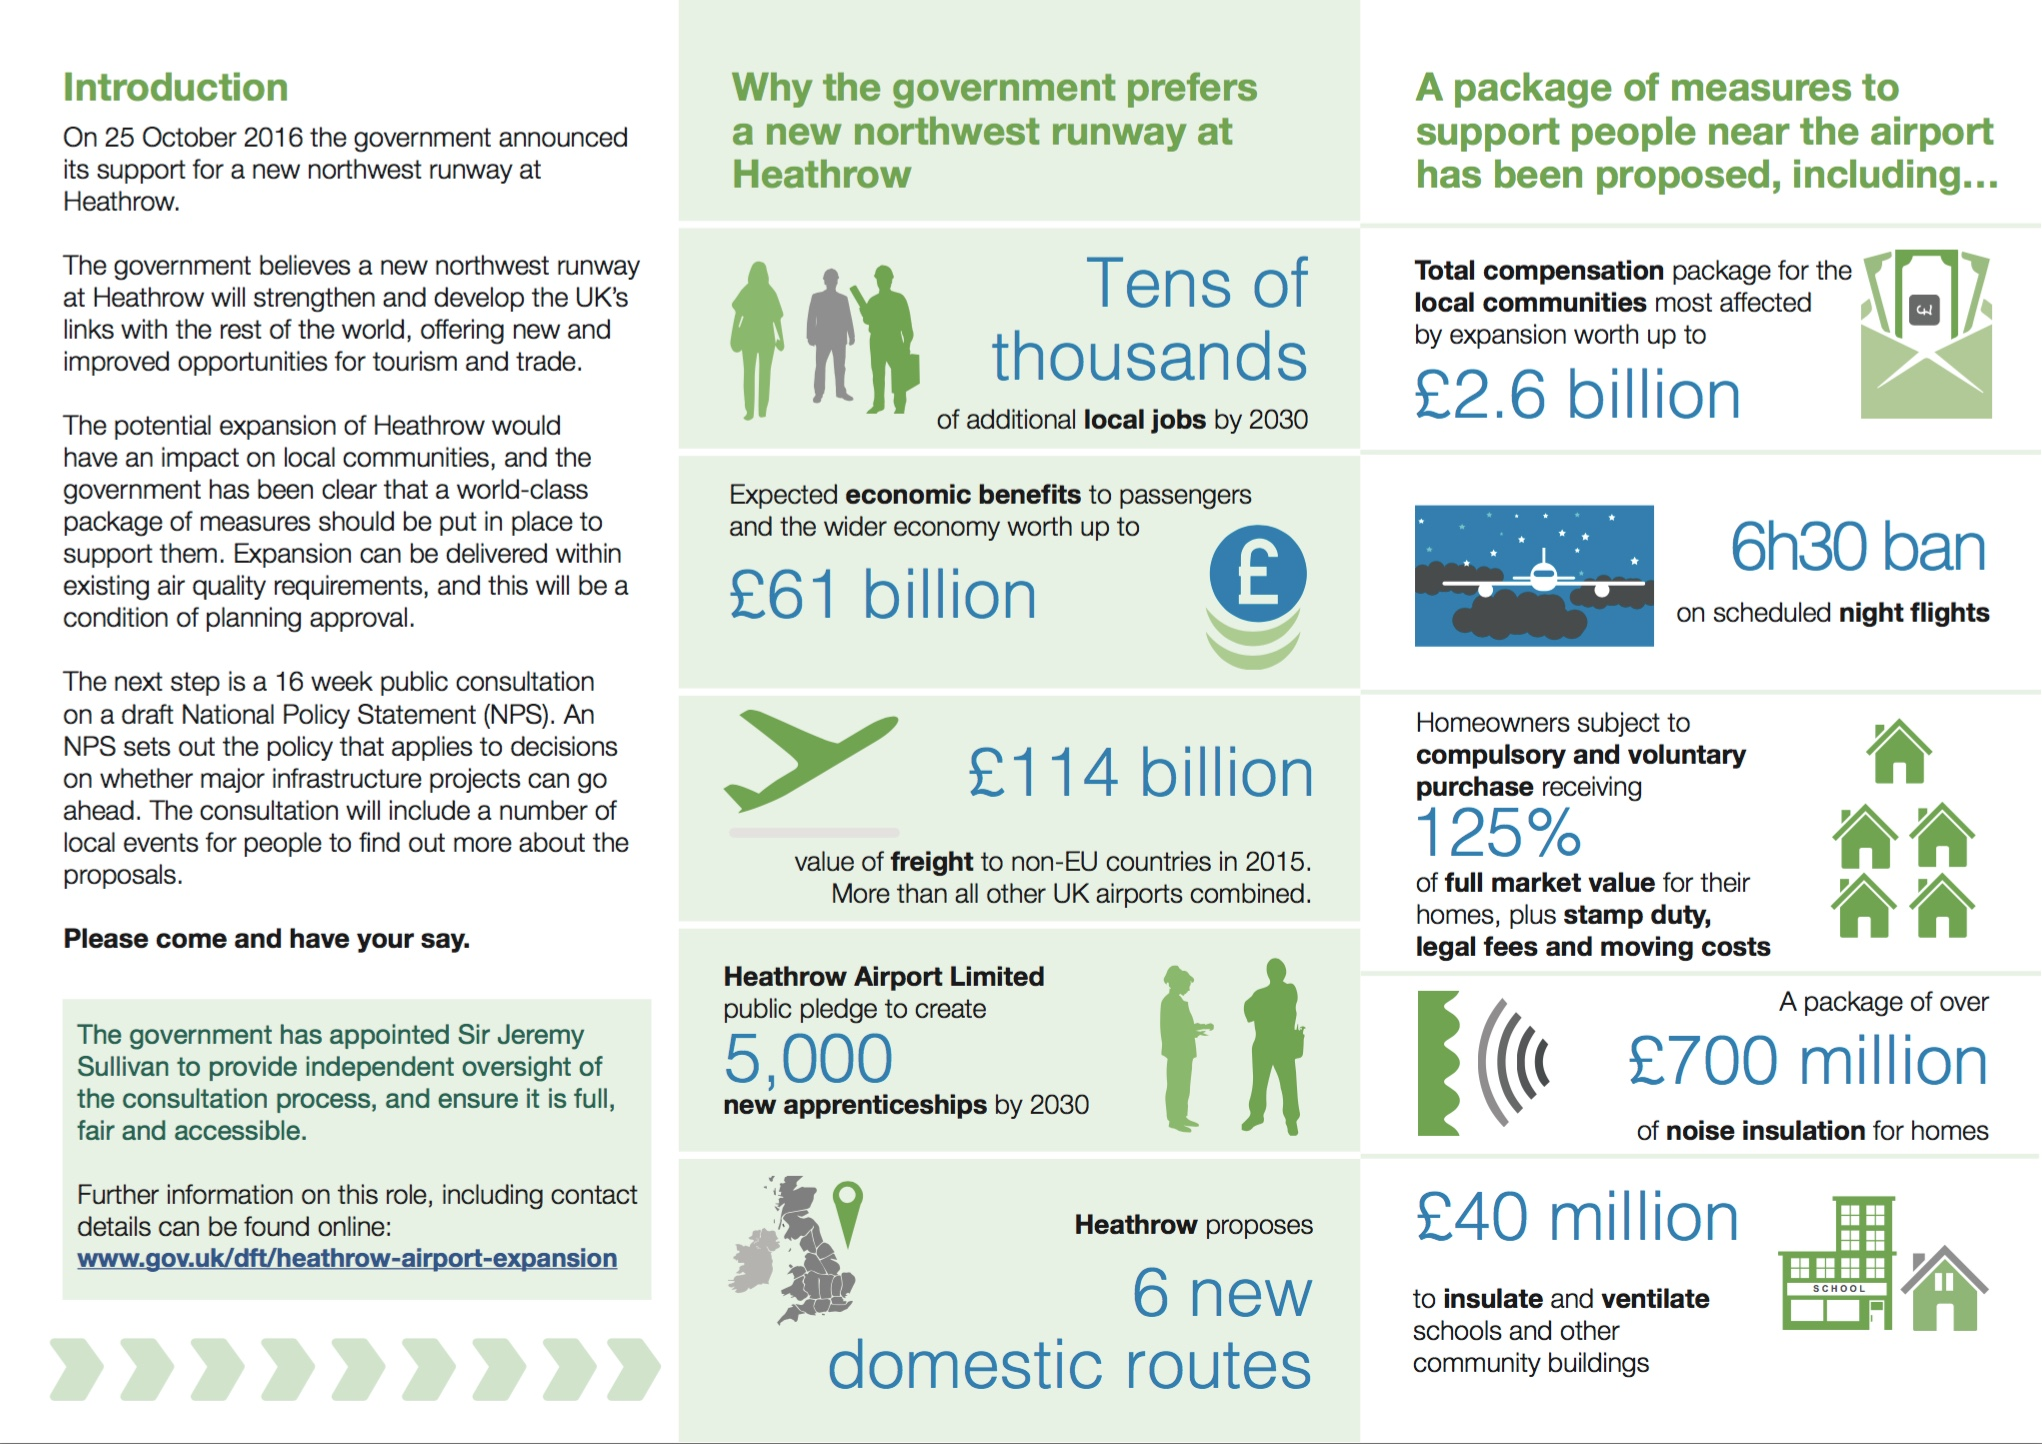 The Department of Transport leaflet promoting Heathrow, even though it claims that people can give their views on other alternatives